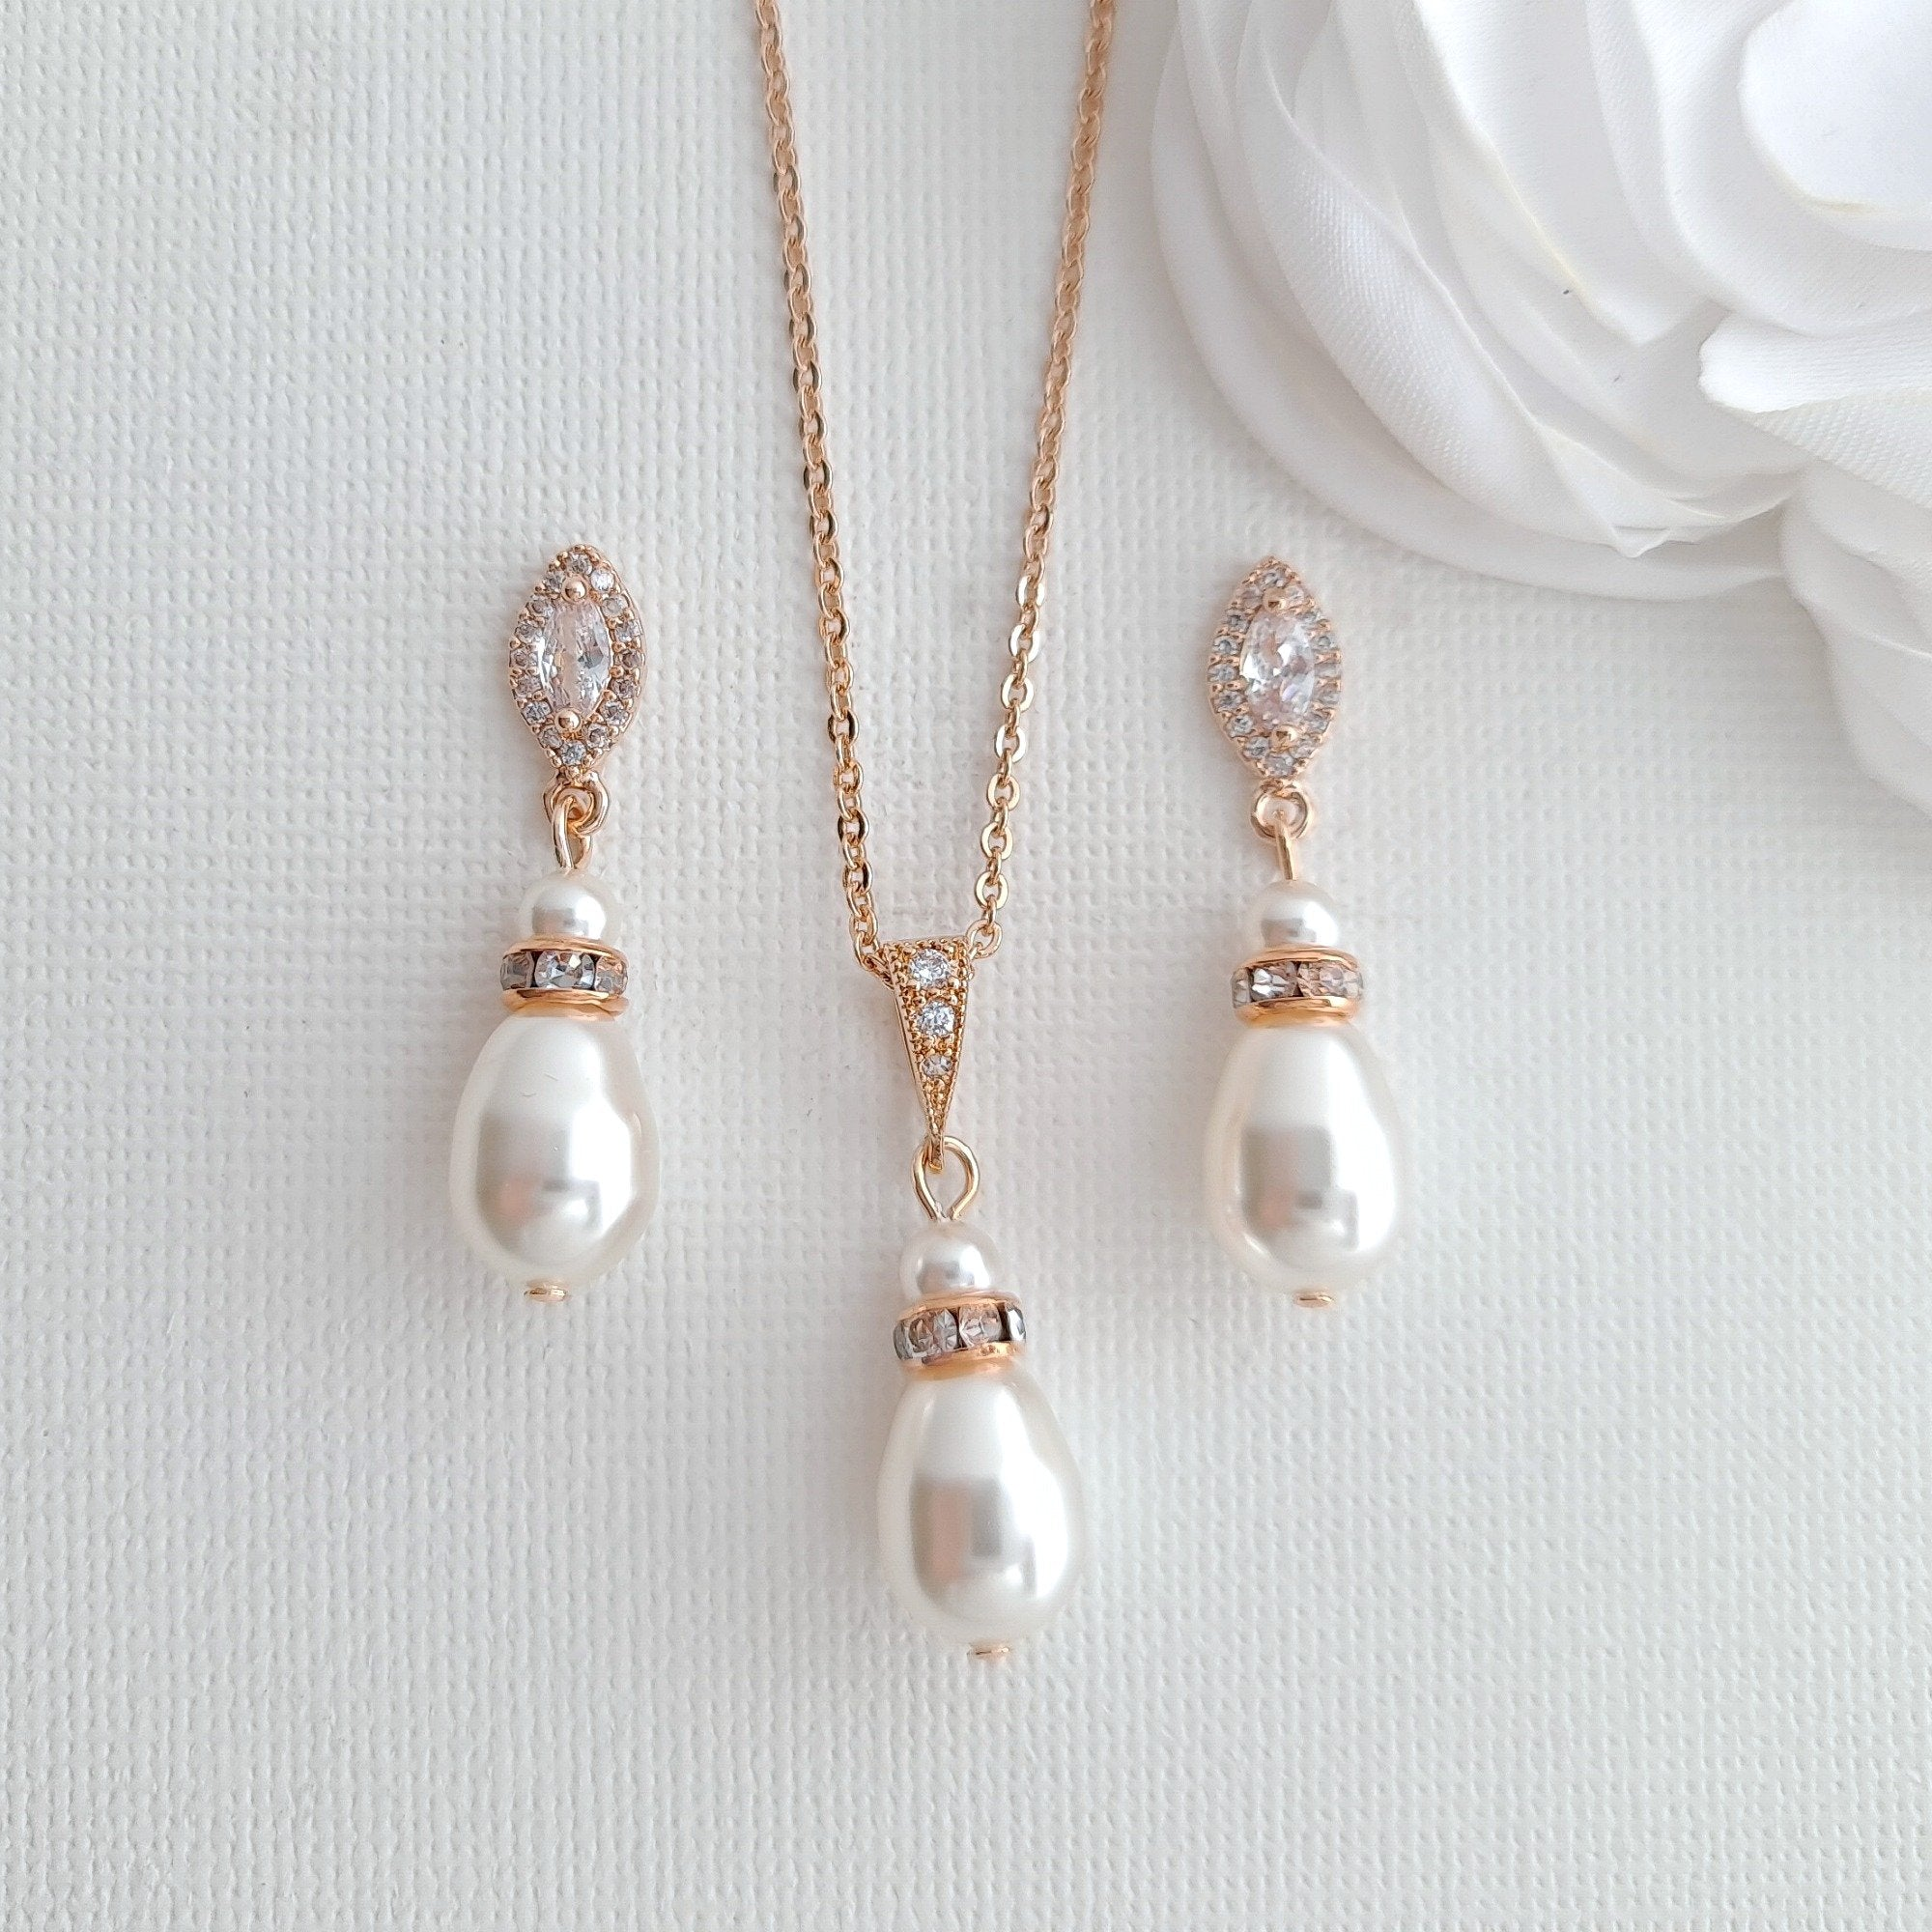 Bridesmaids Jewelry Gift under $50,Pearl Earrings Necklace Set- Ella - PoetryDesigns